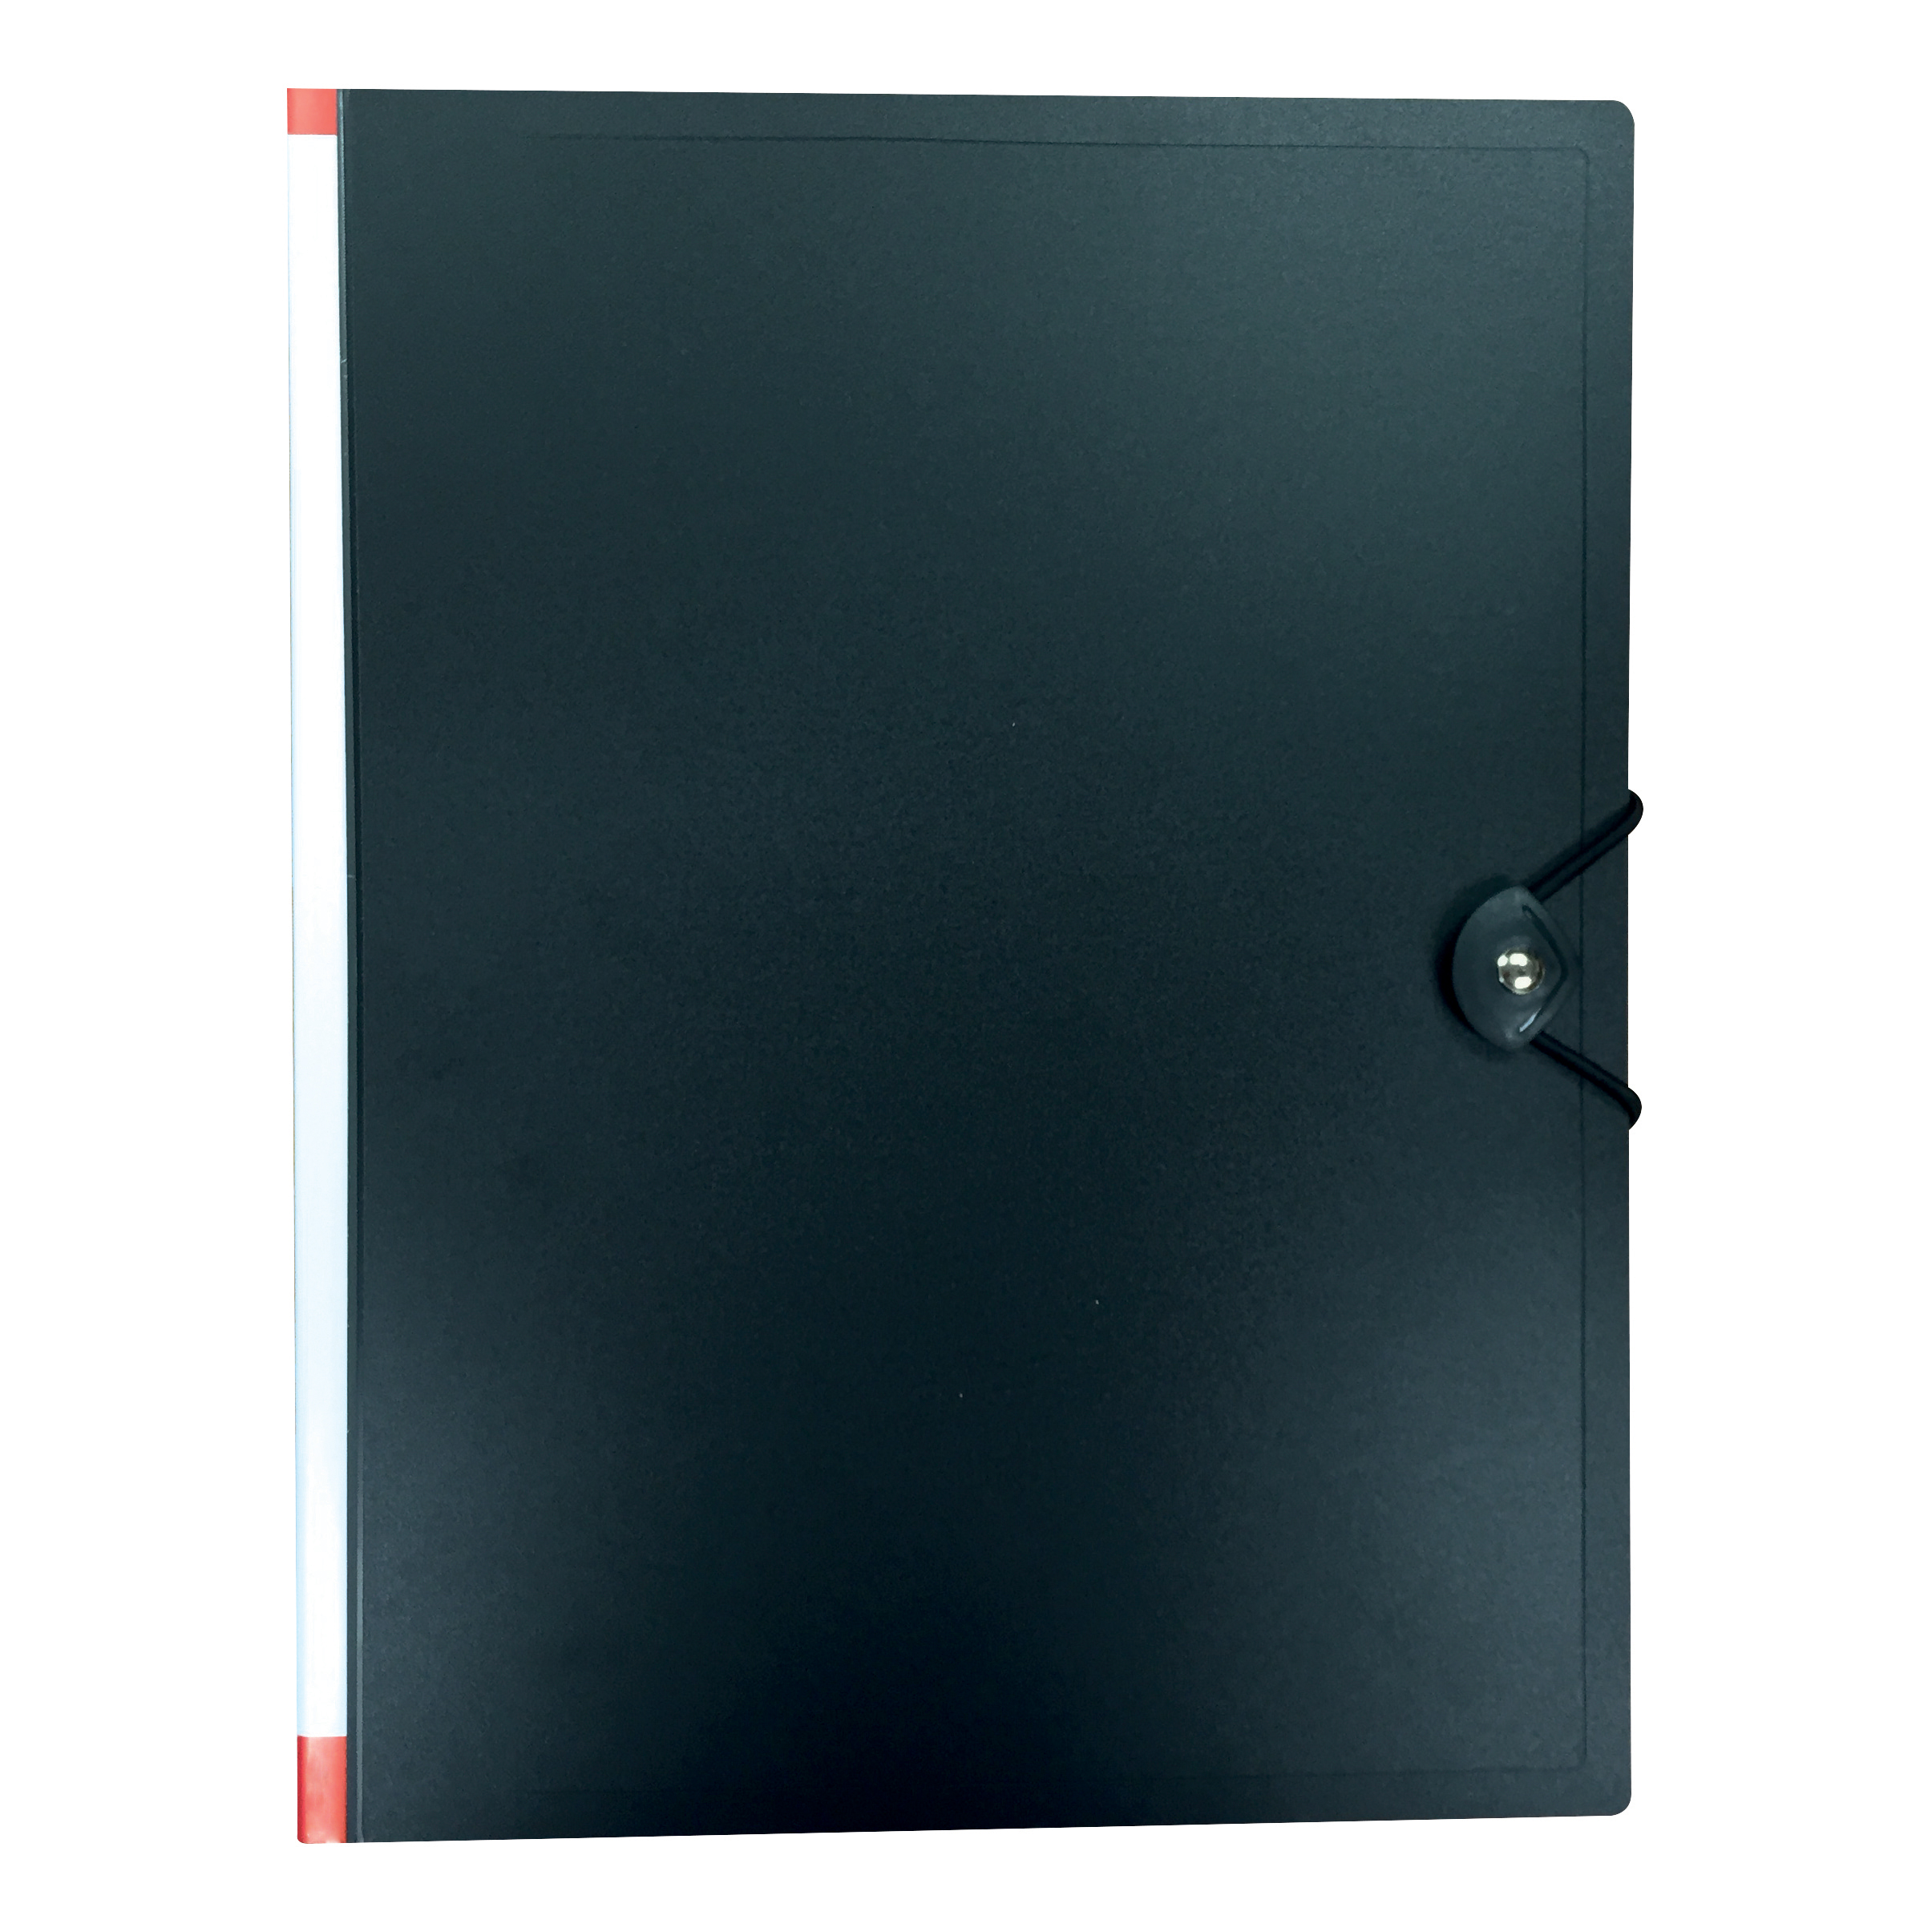 Display Books 5 Star Office Display Book Hardback Cover Polypropylene 100 Pockets A4 Black